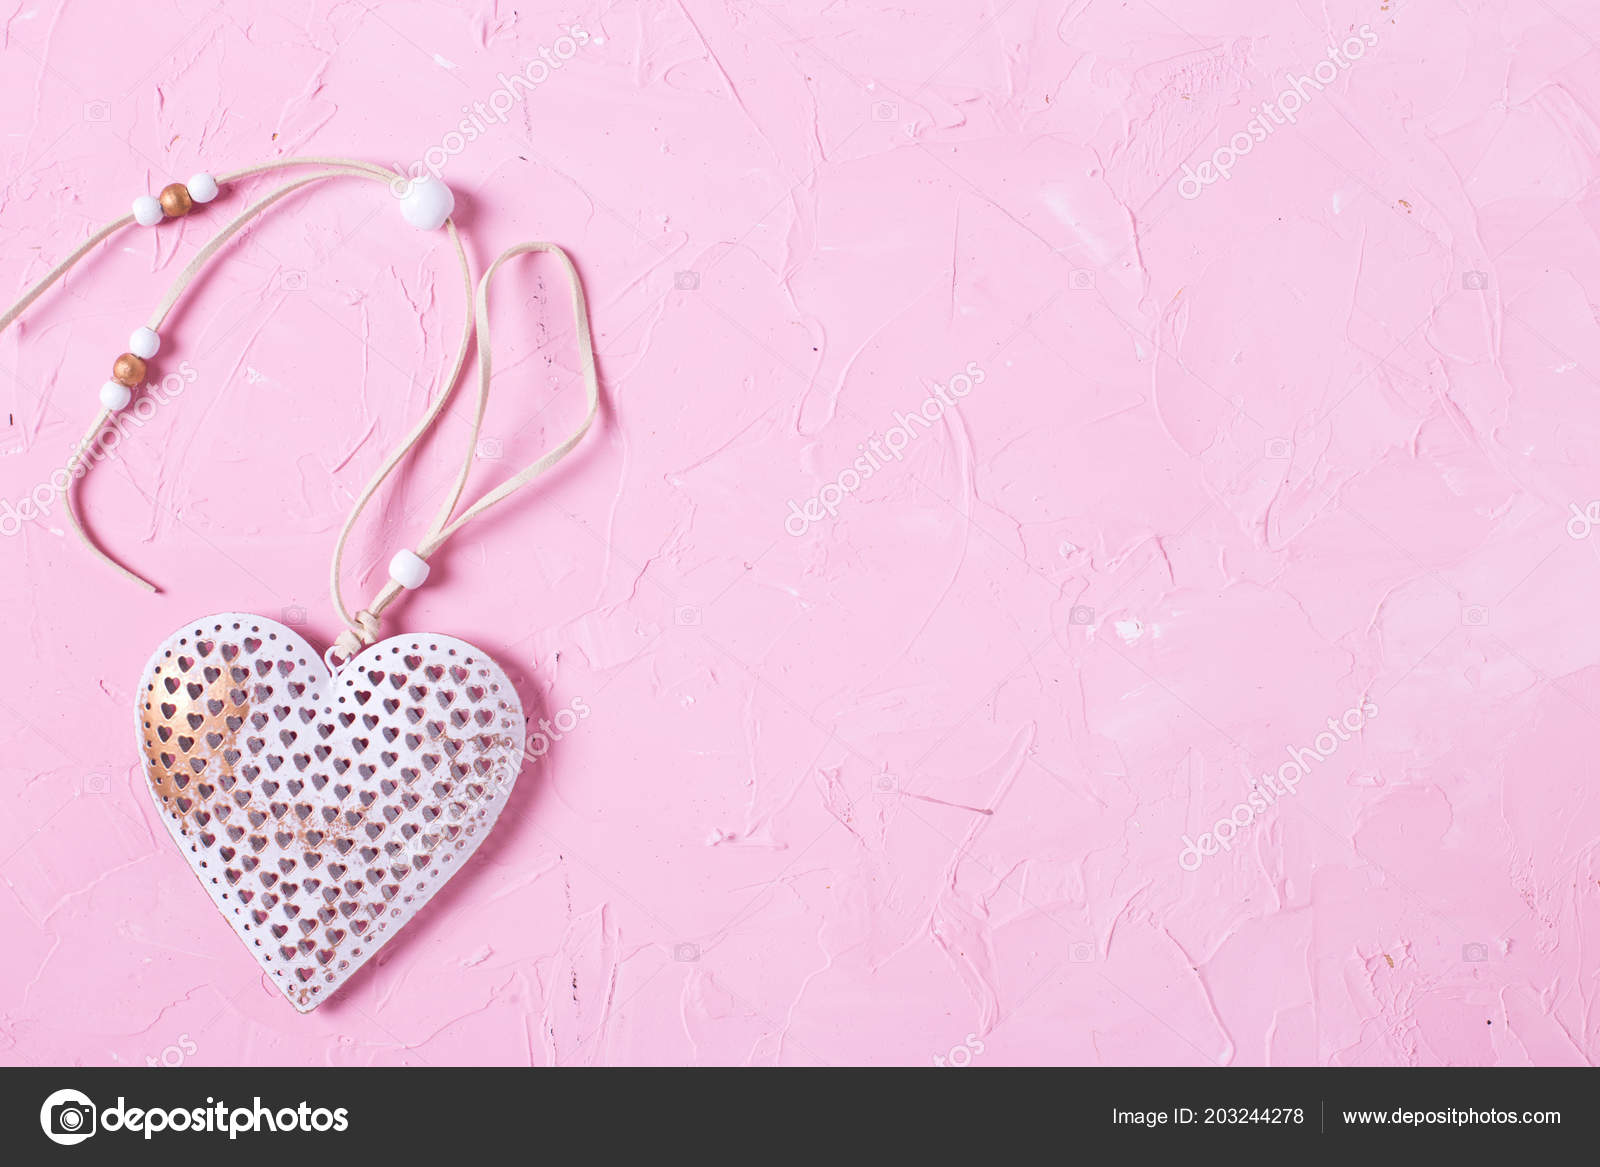 White Rustic Heart Pink Textured Background Stock Photo